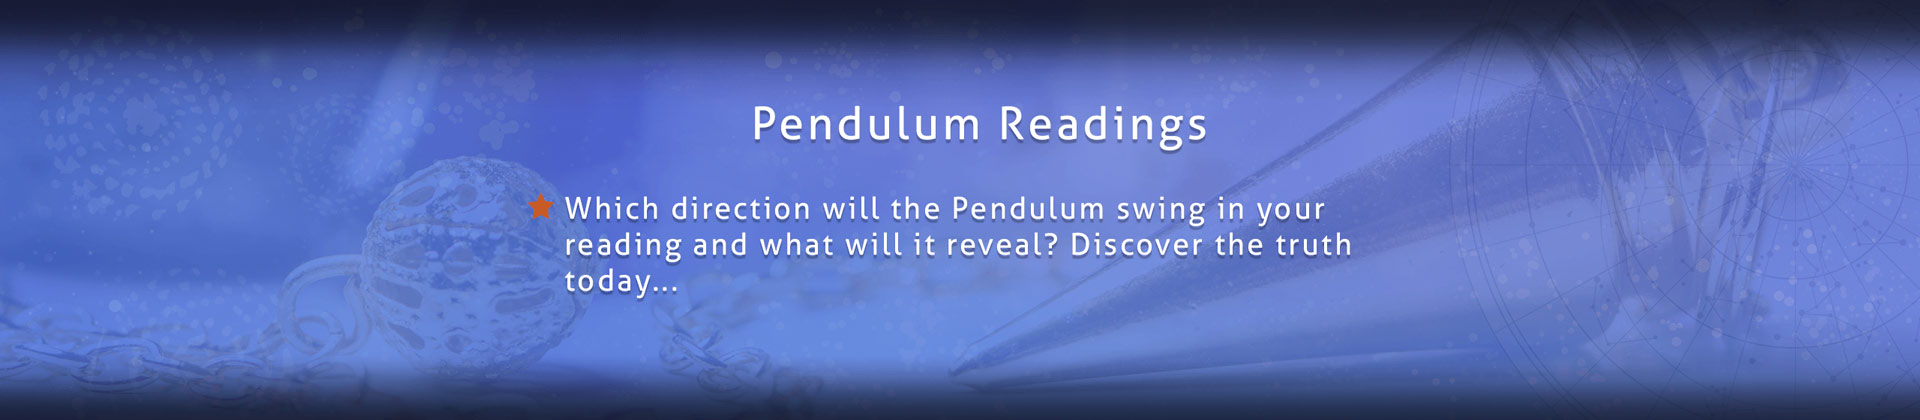 Pendulum Readings Night Star